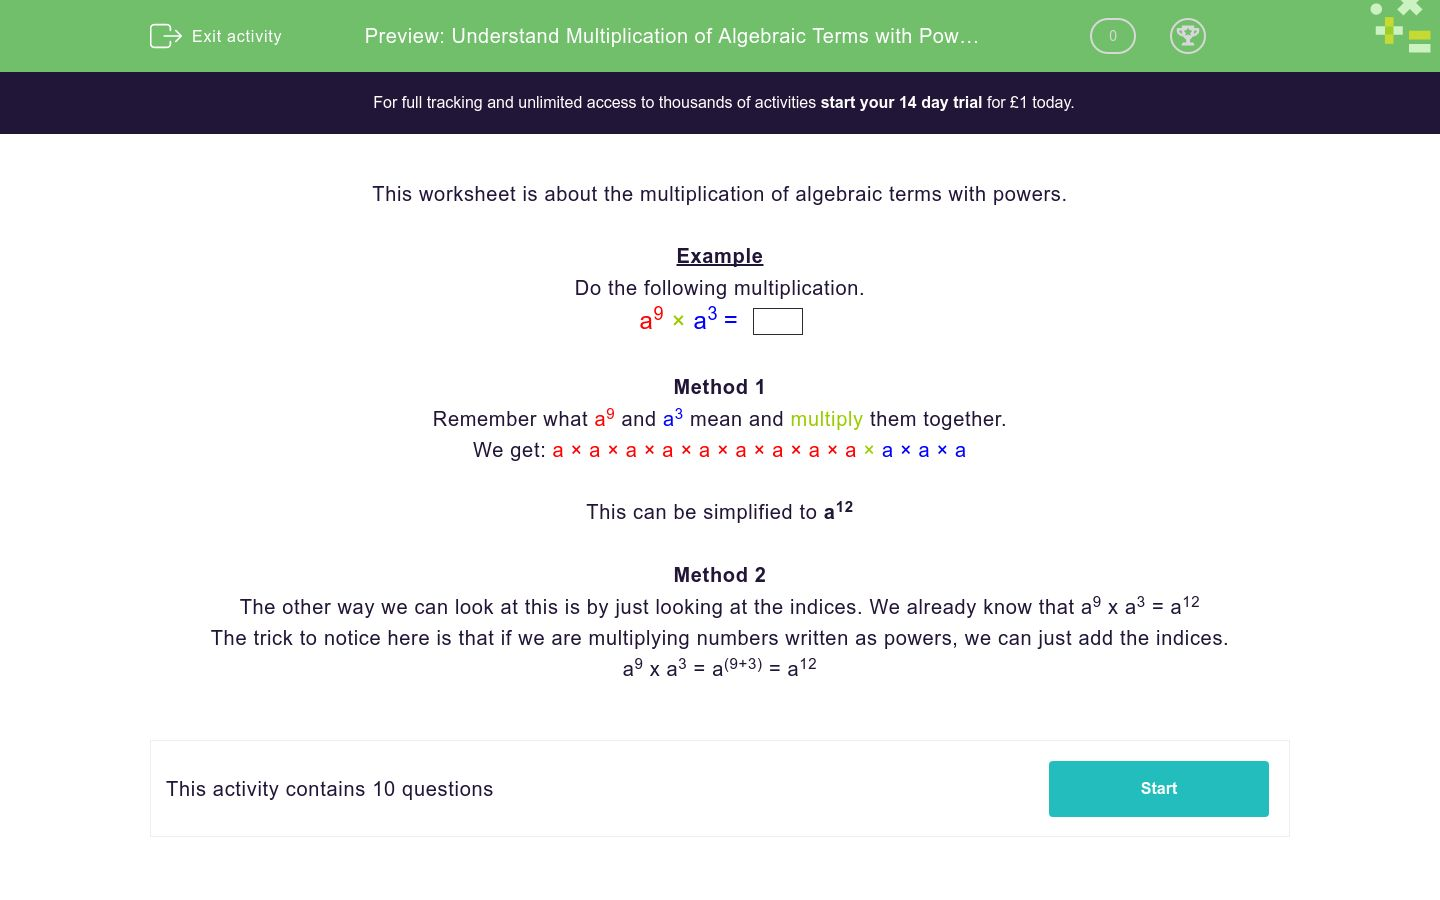 'Understand Multiplication of Algebraic Terms with Powers' worksheet